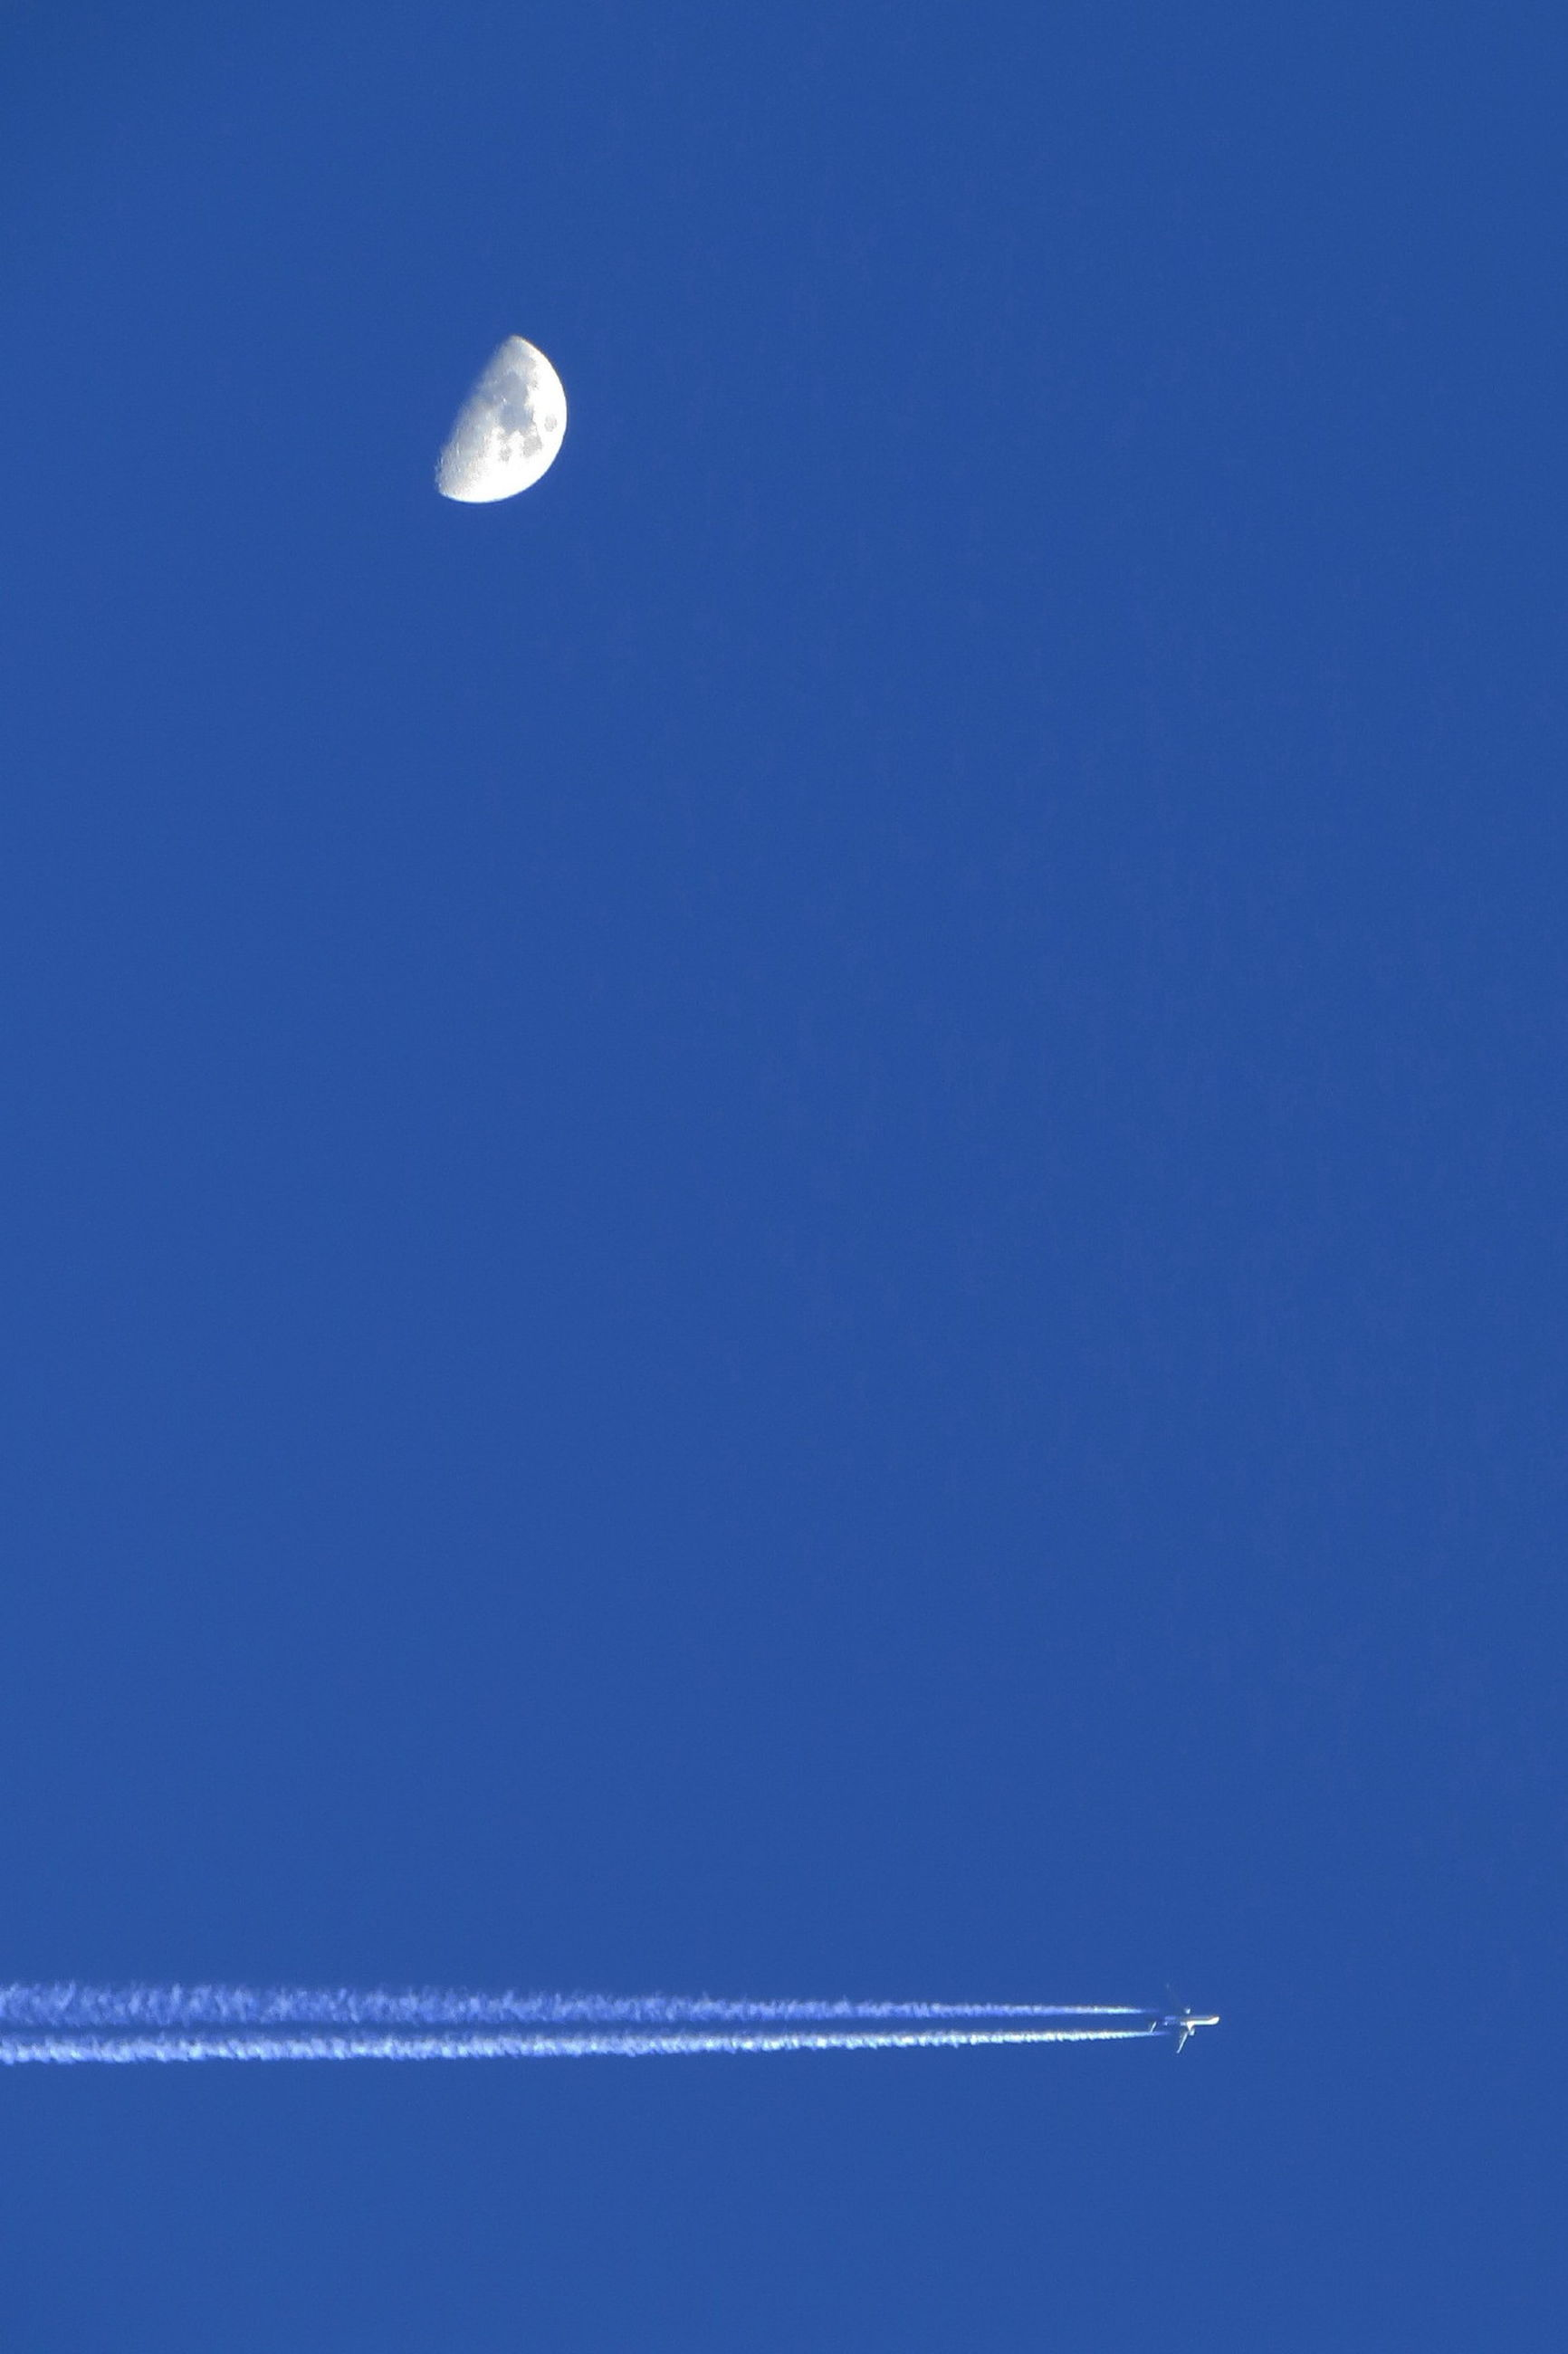 moon, low angle view, clear sky, astronomy, blue, full moon, night, planetary moon, copy space, sky, space exploration, beauty in nature, scenics, nature, discovery, flying, tranquility, outdoors, half moon, tranquil scene